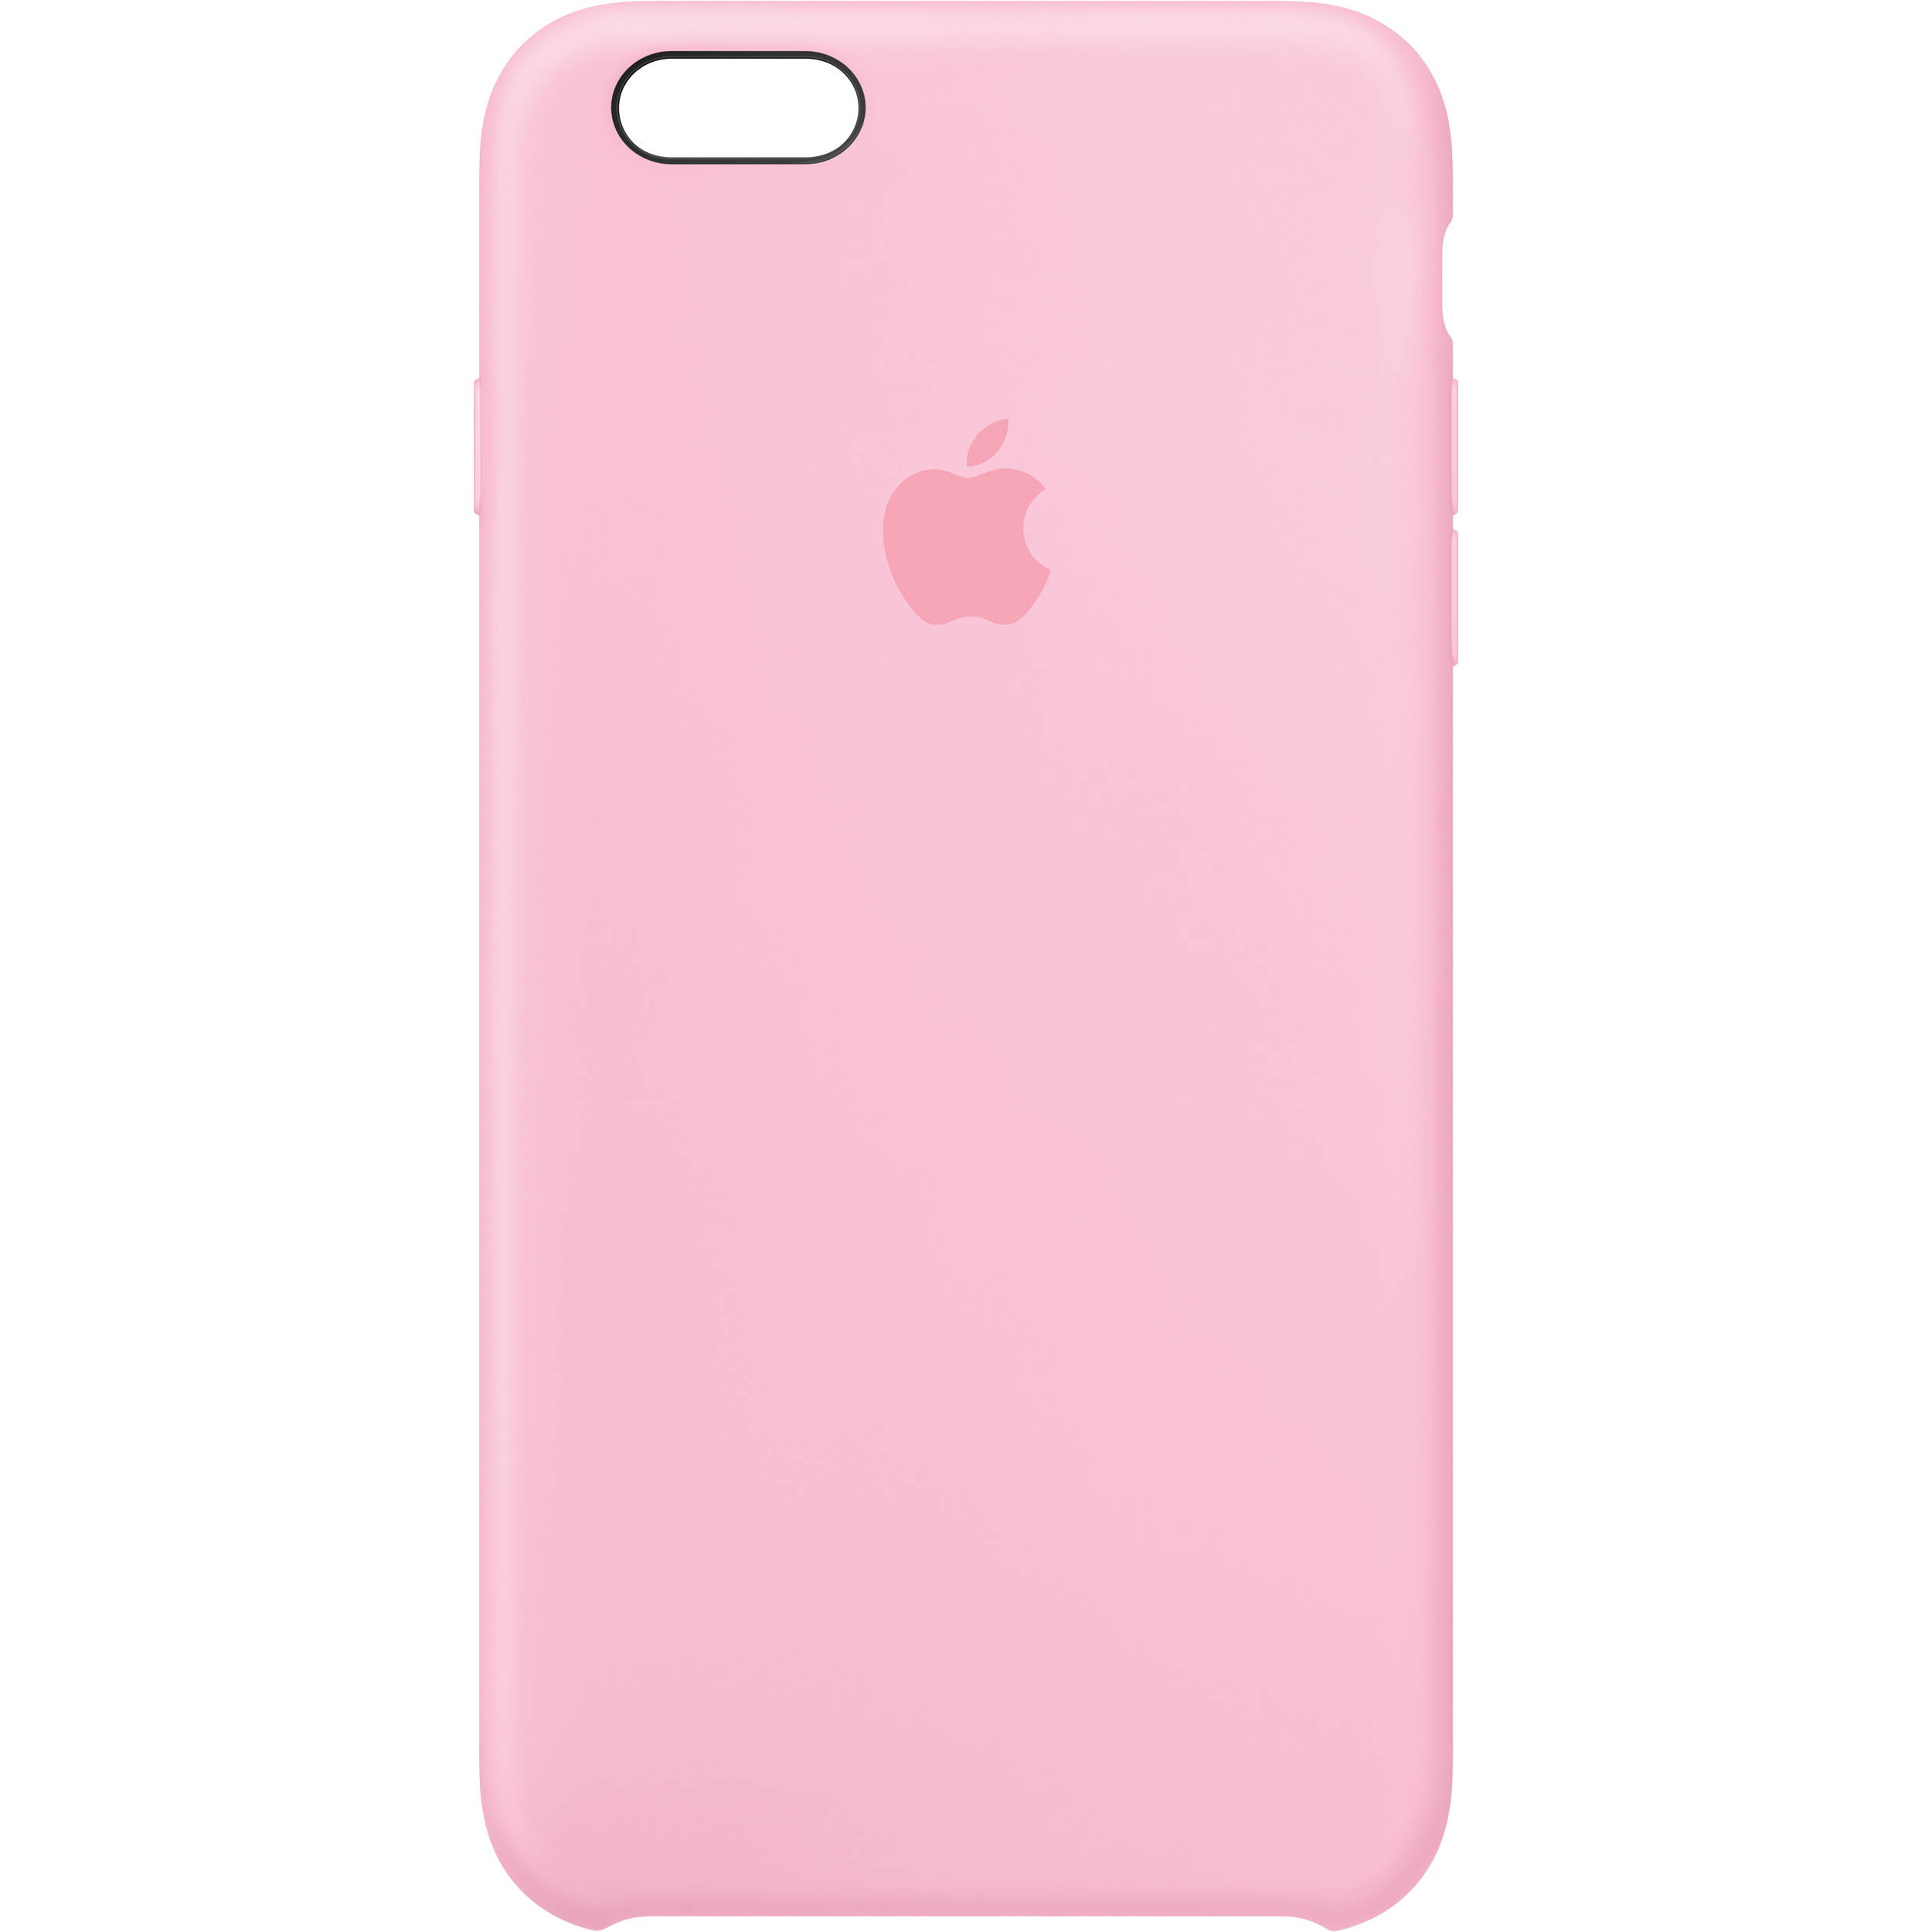 promo code 71c55 5796a Apple Silicone Case for iPhone 6 Plus - Pink